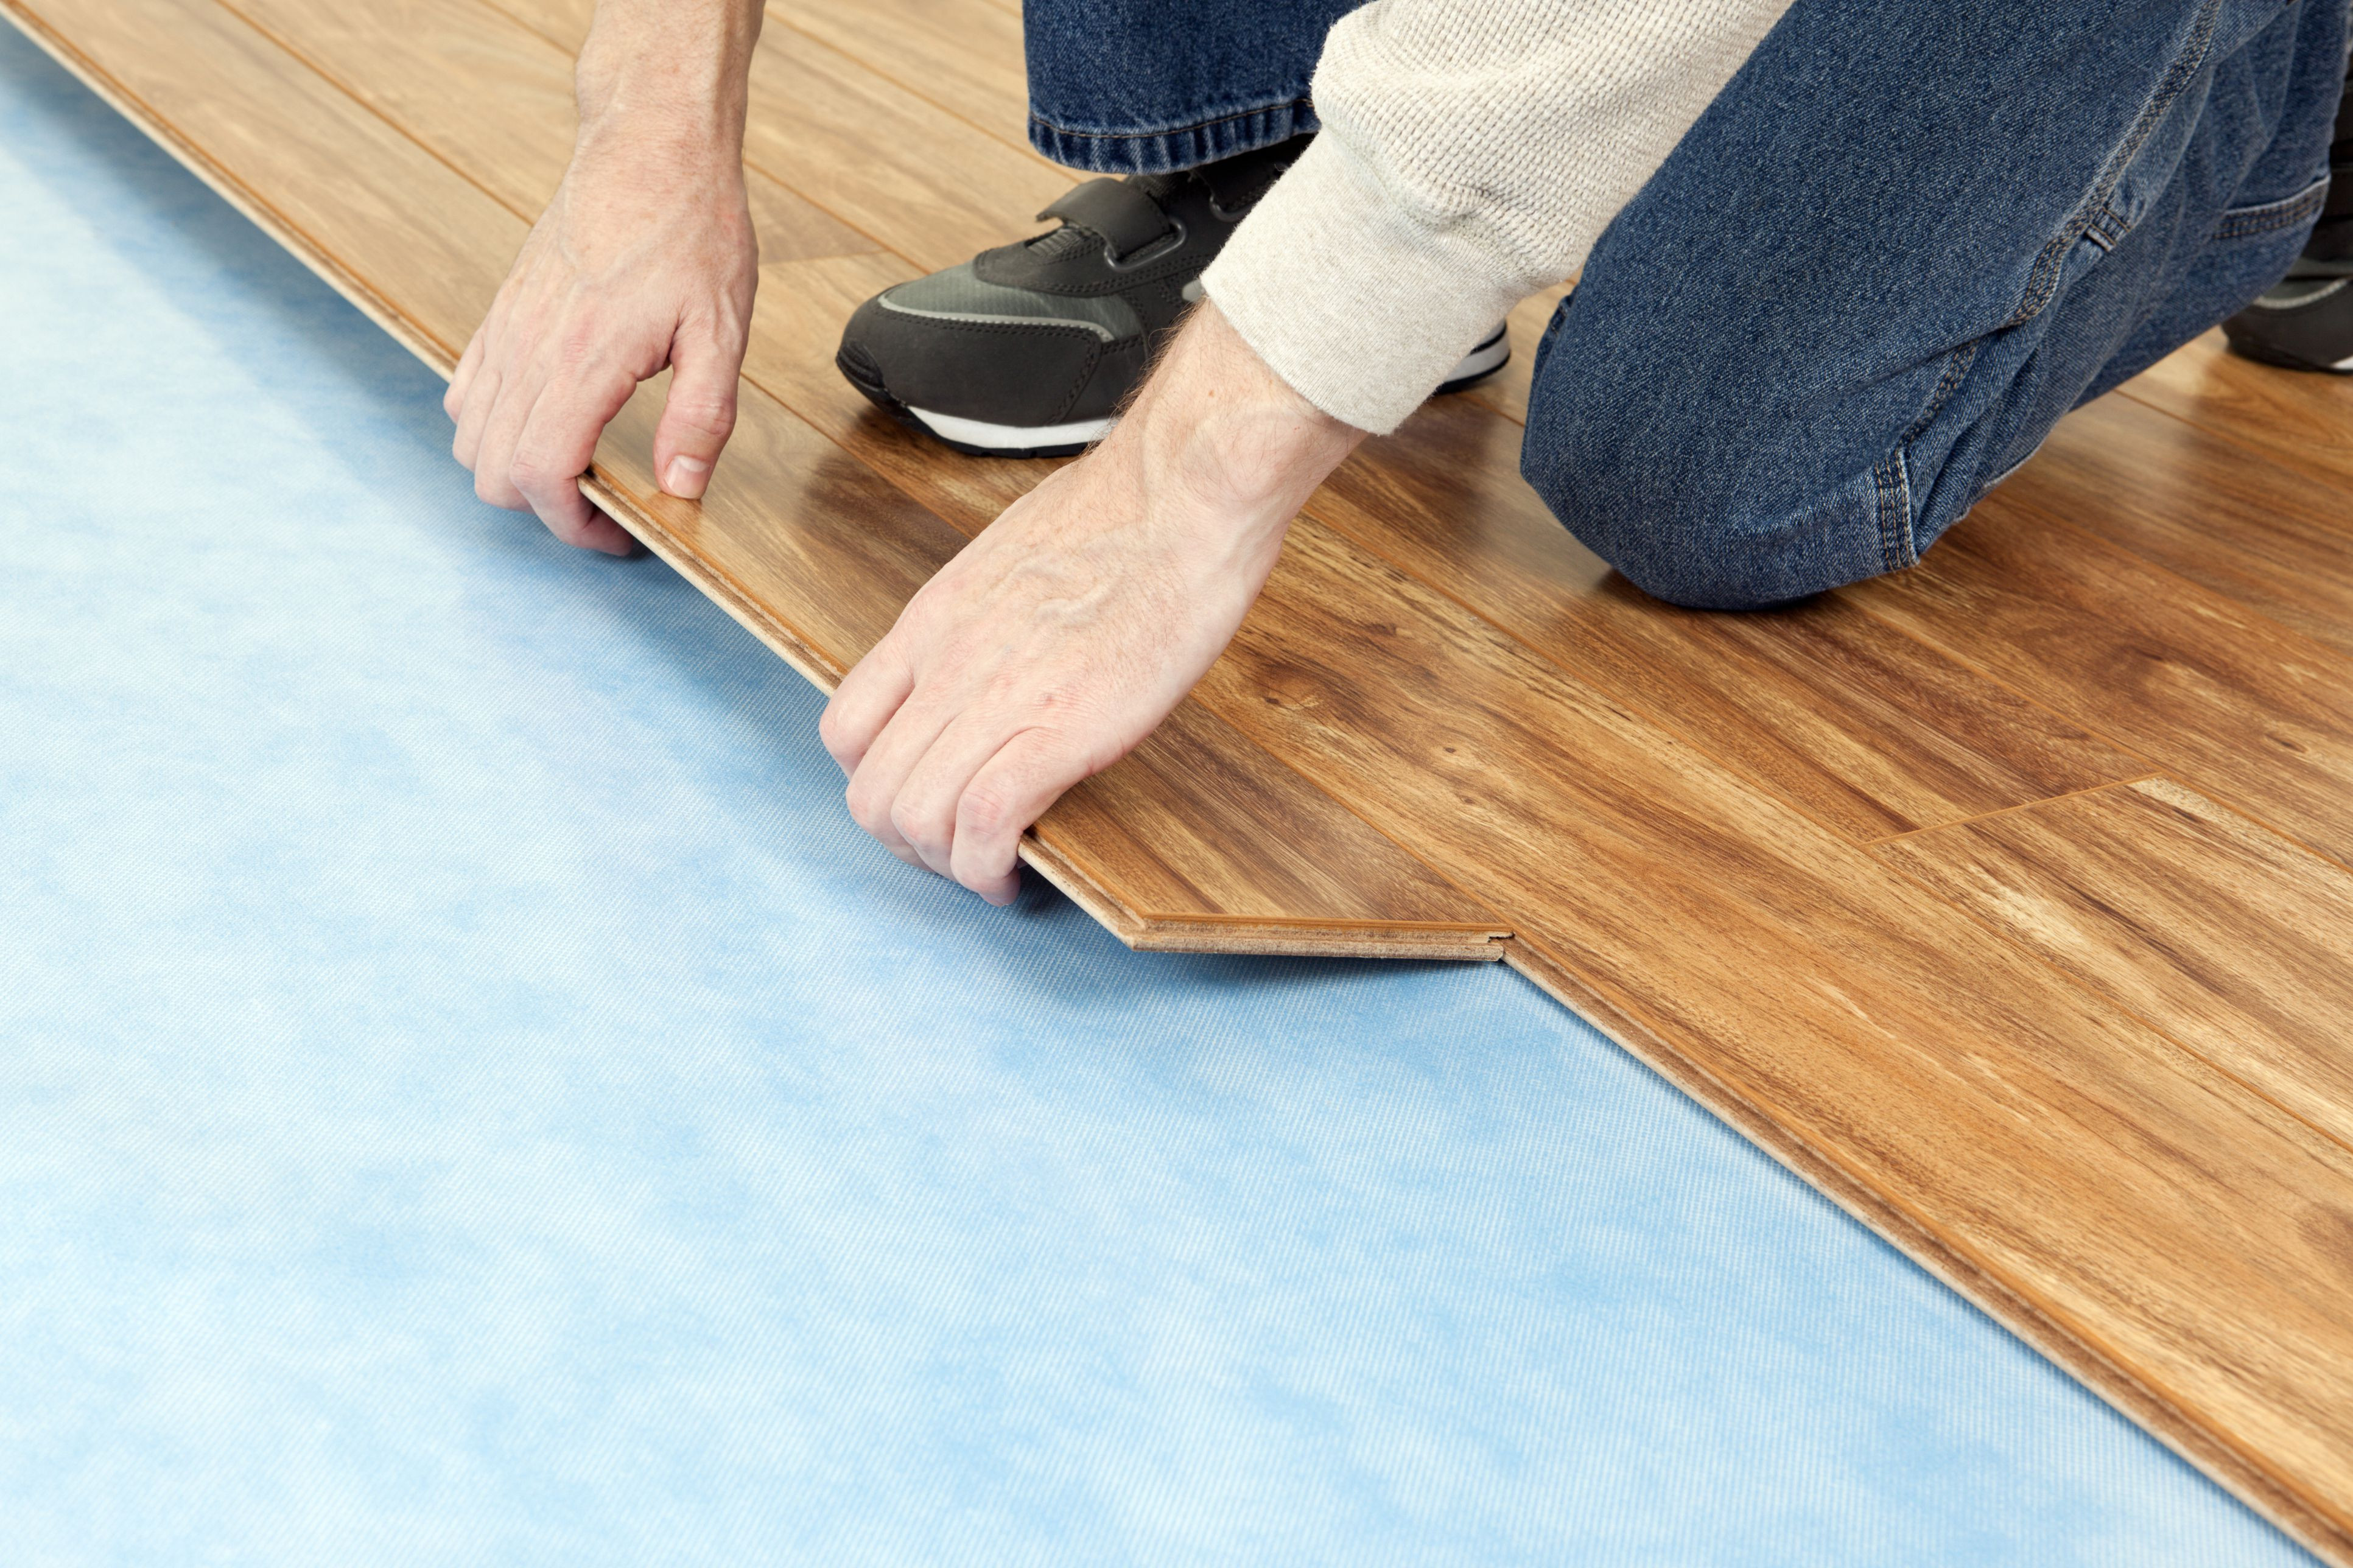 installing hardwood floors in existing kitchen of flooring underlayment the basics intended for new floor installation 185270632 582b722c3df78c6f6af0a8ab